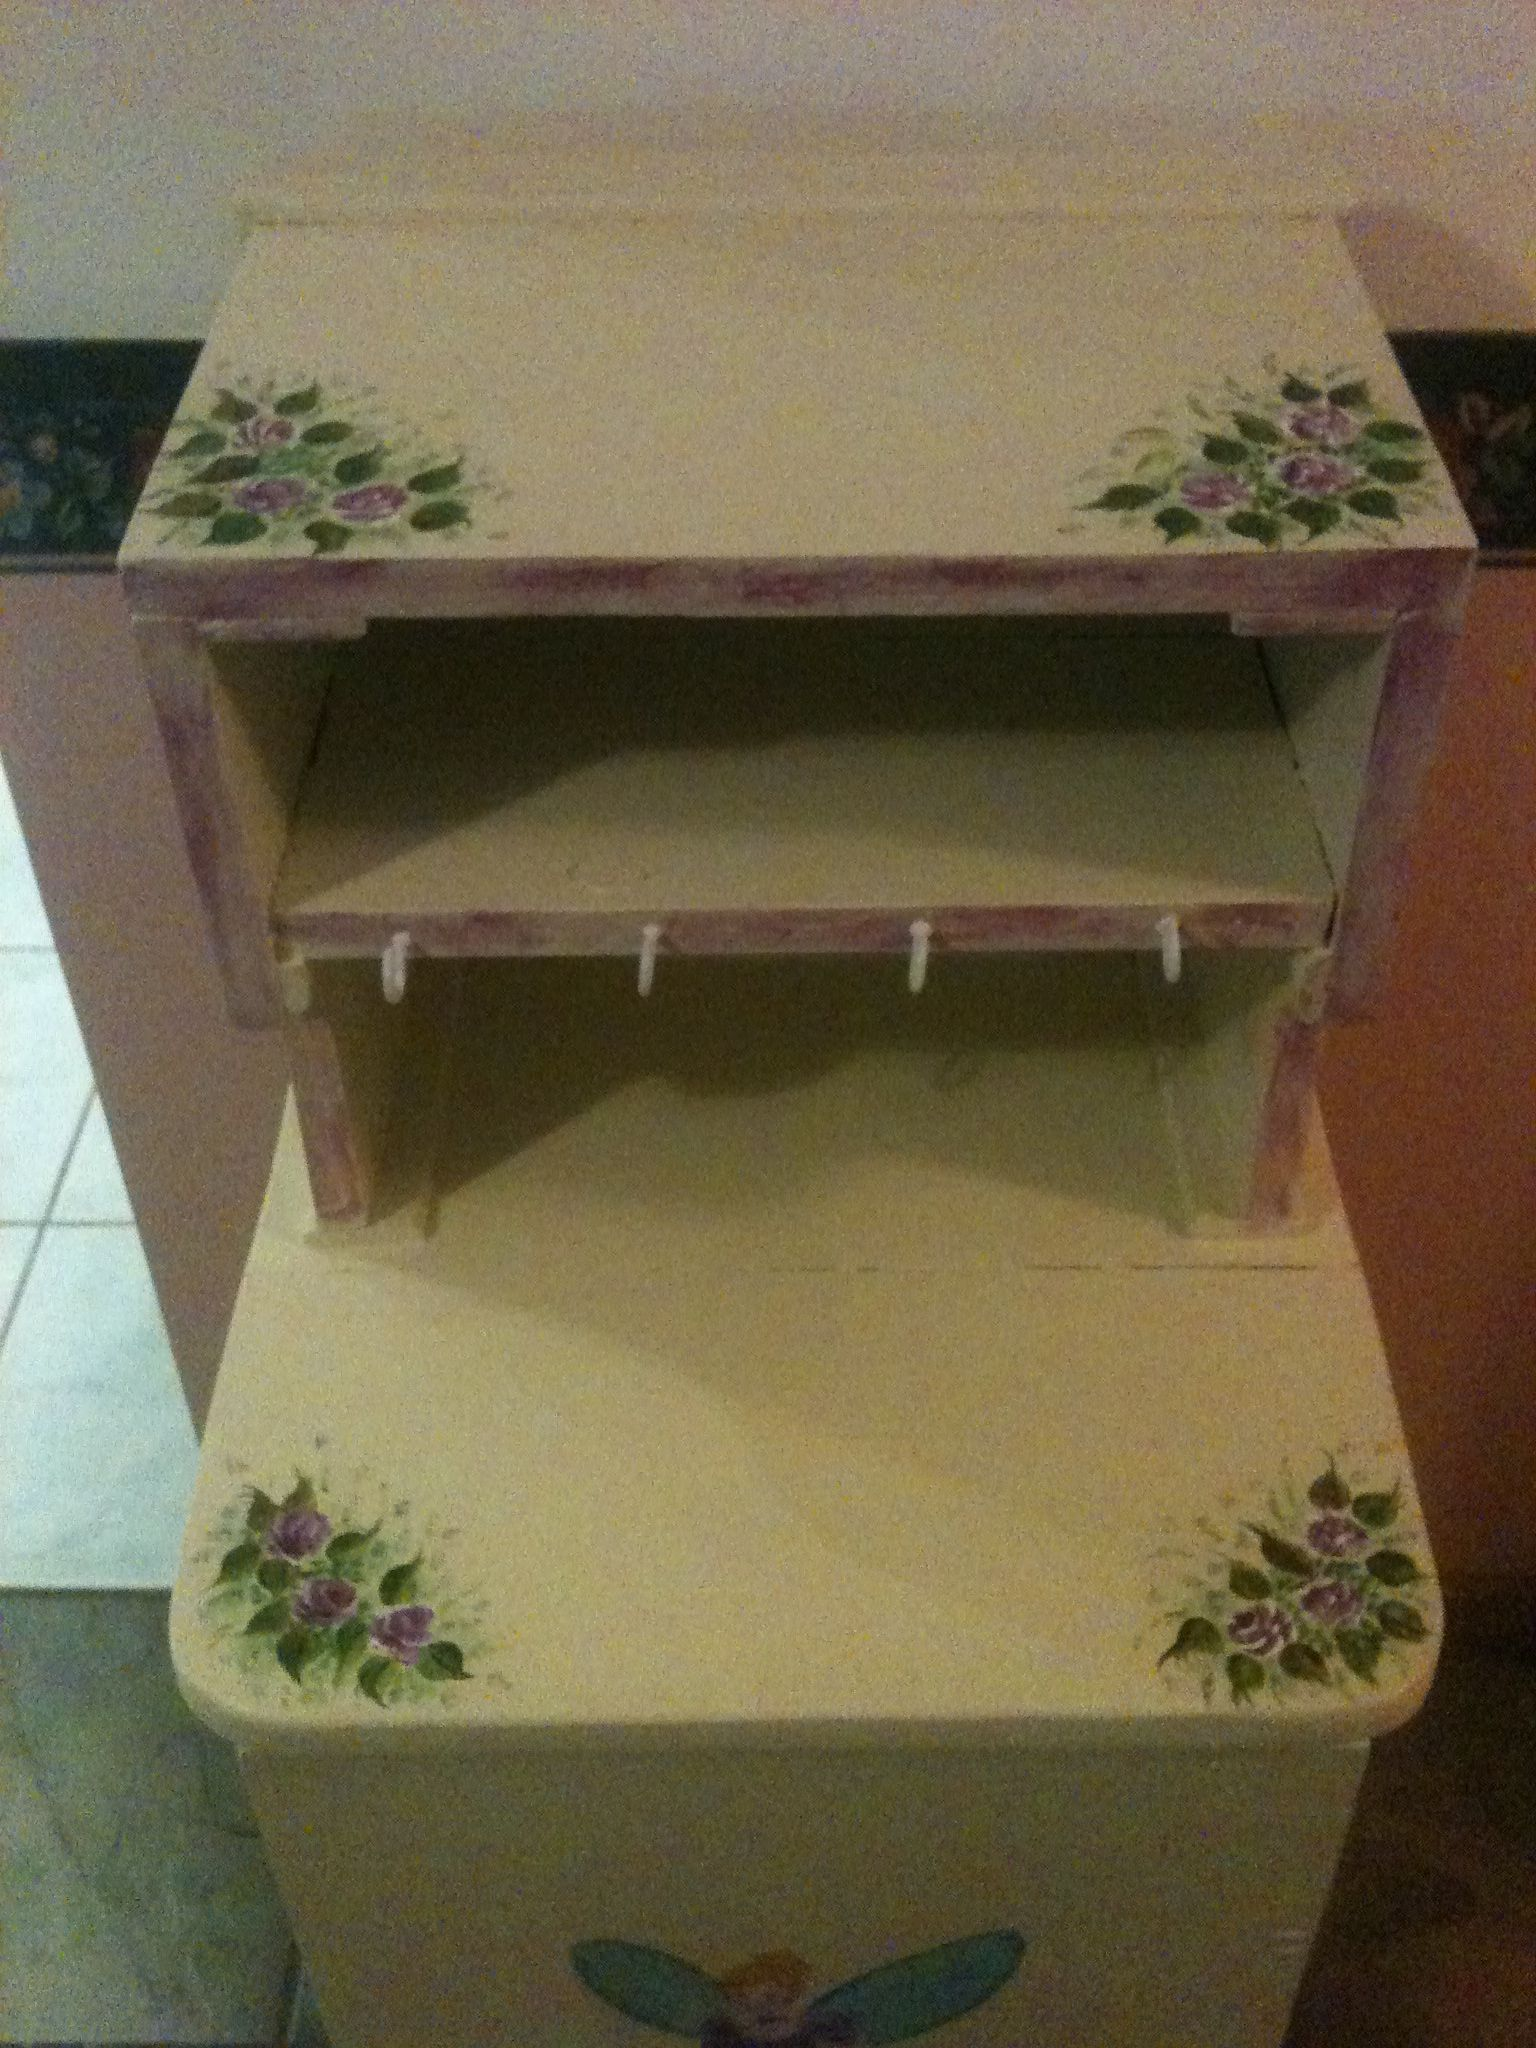 Painting on a mini dresser for a little girl by Therese Vahland